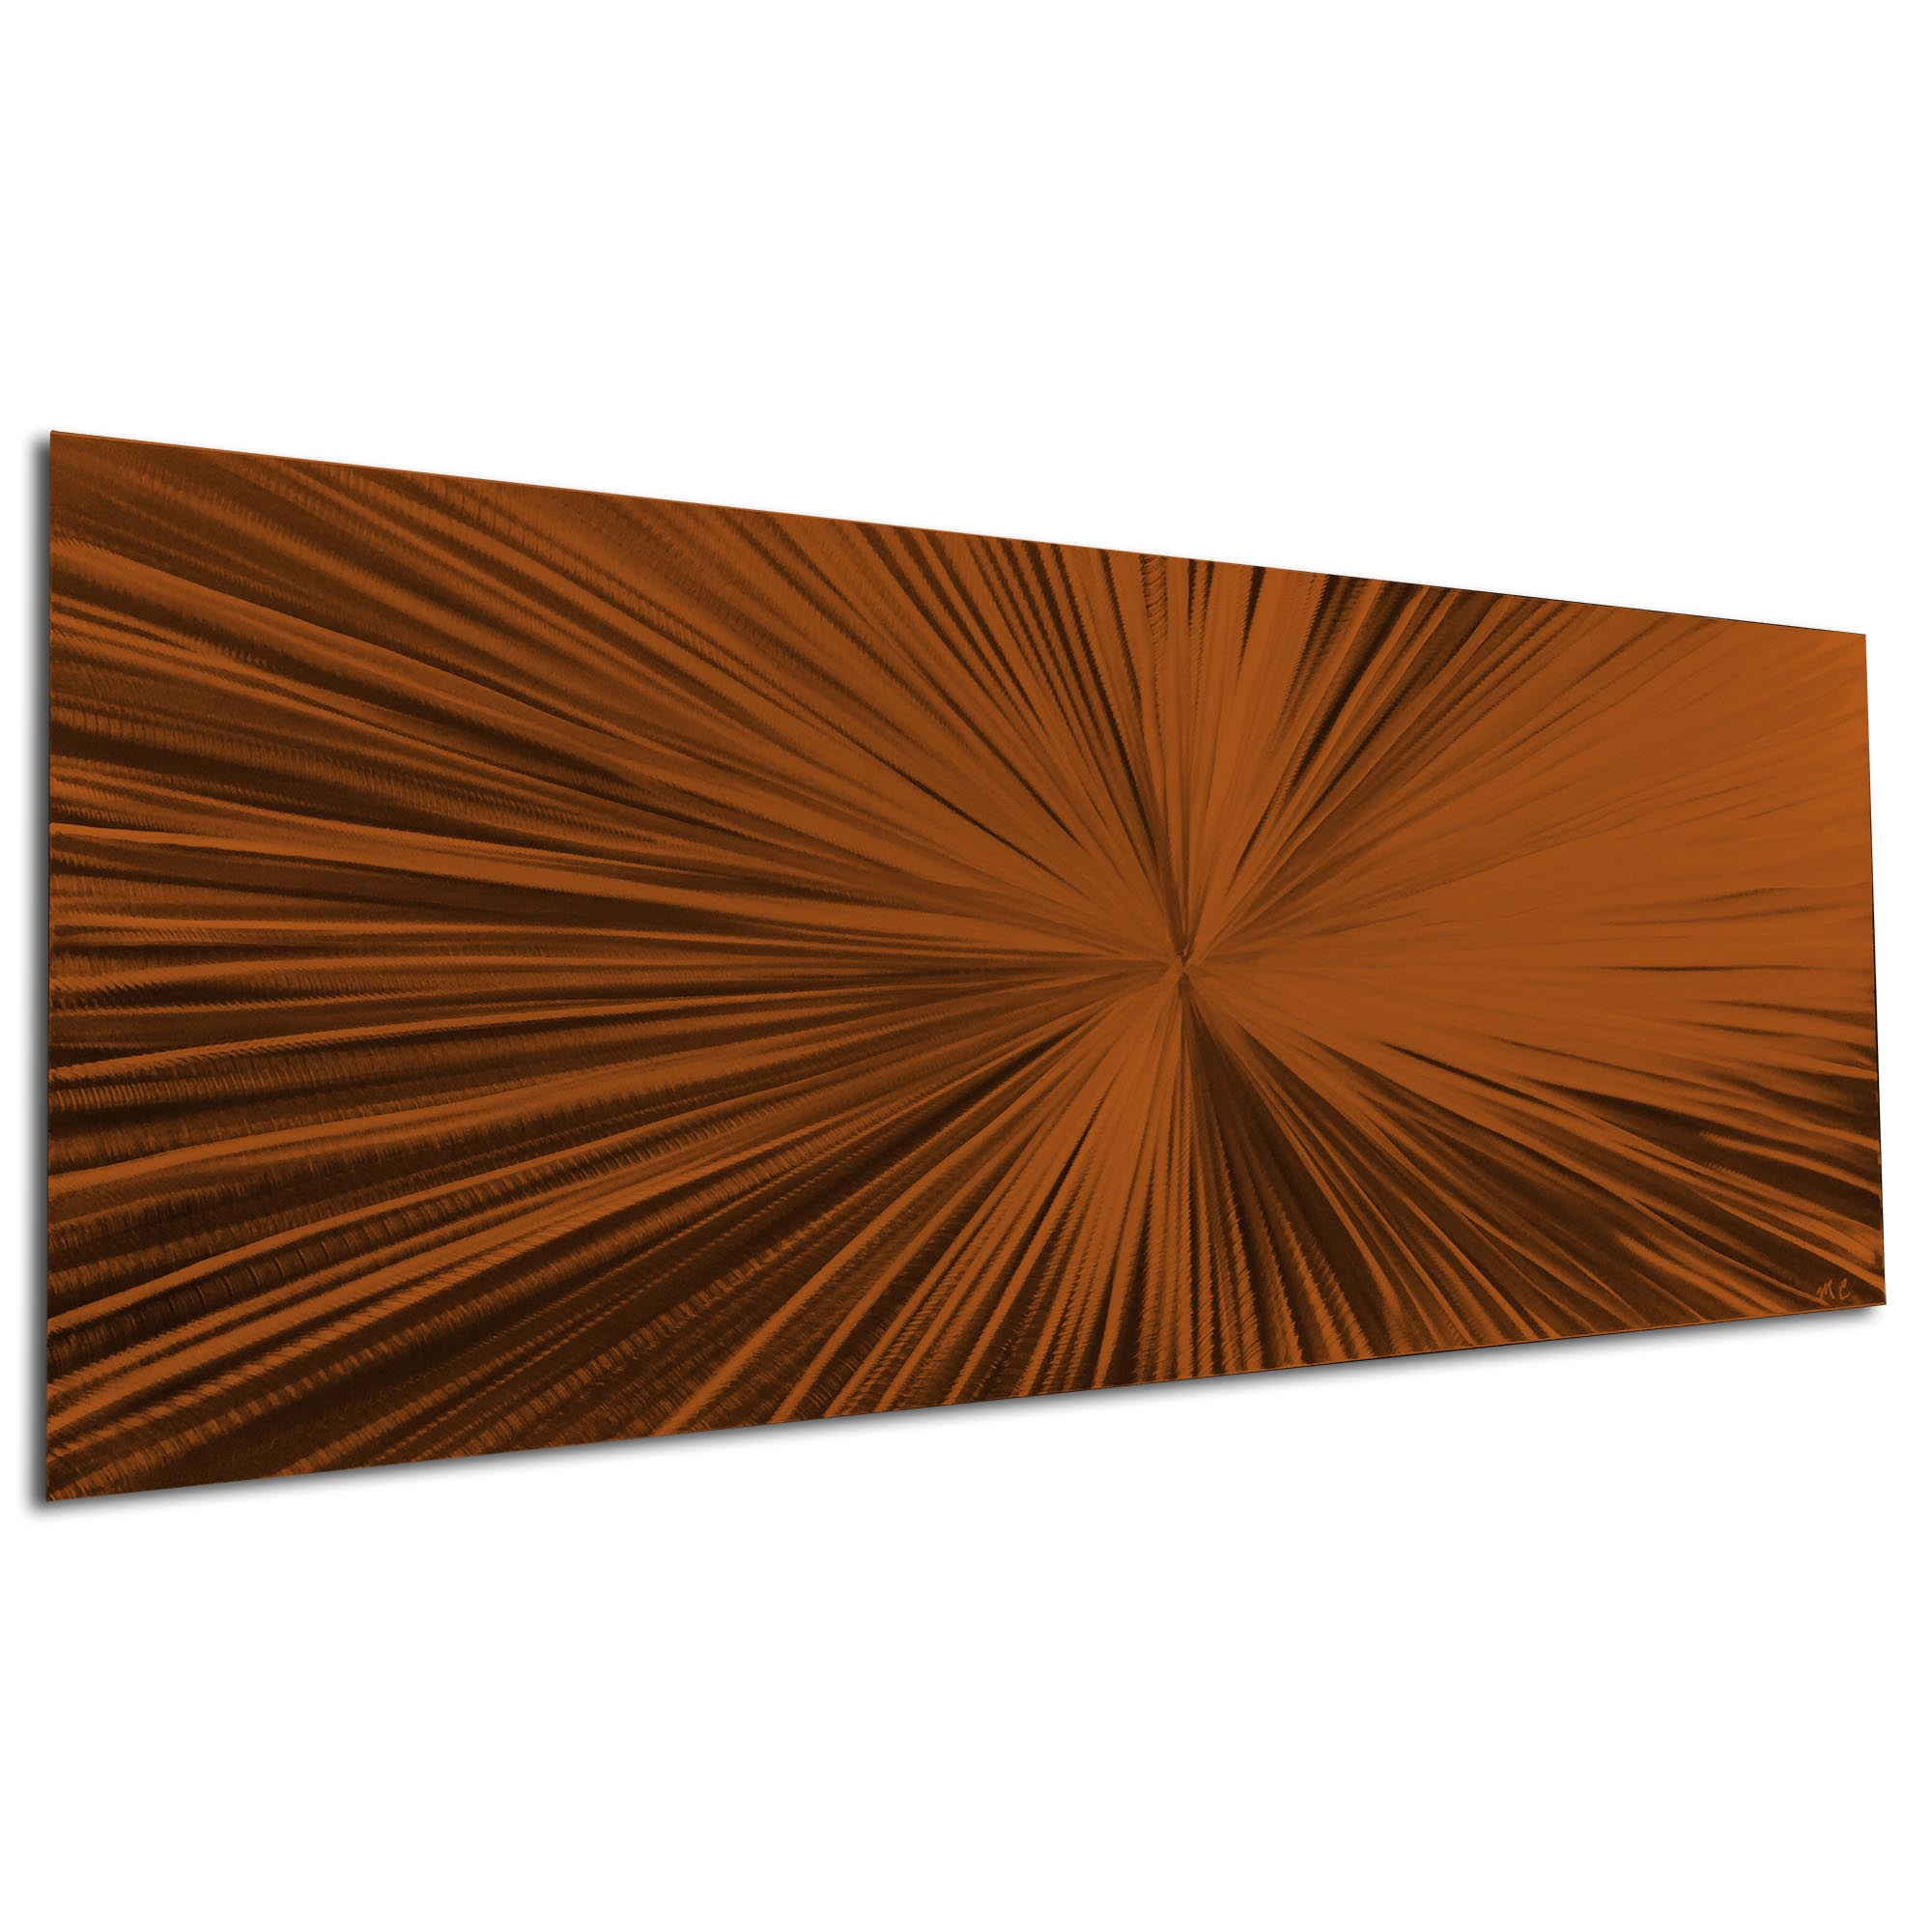 Starburst Brown by Helena Martin - Original Abstract Art on Ground and Painted Metal - Image 3